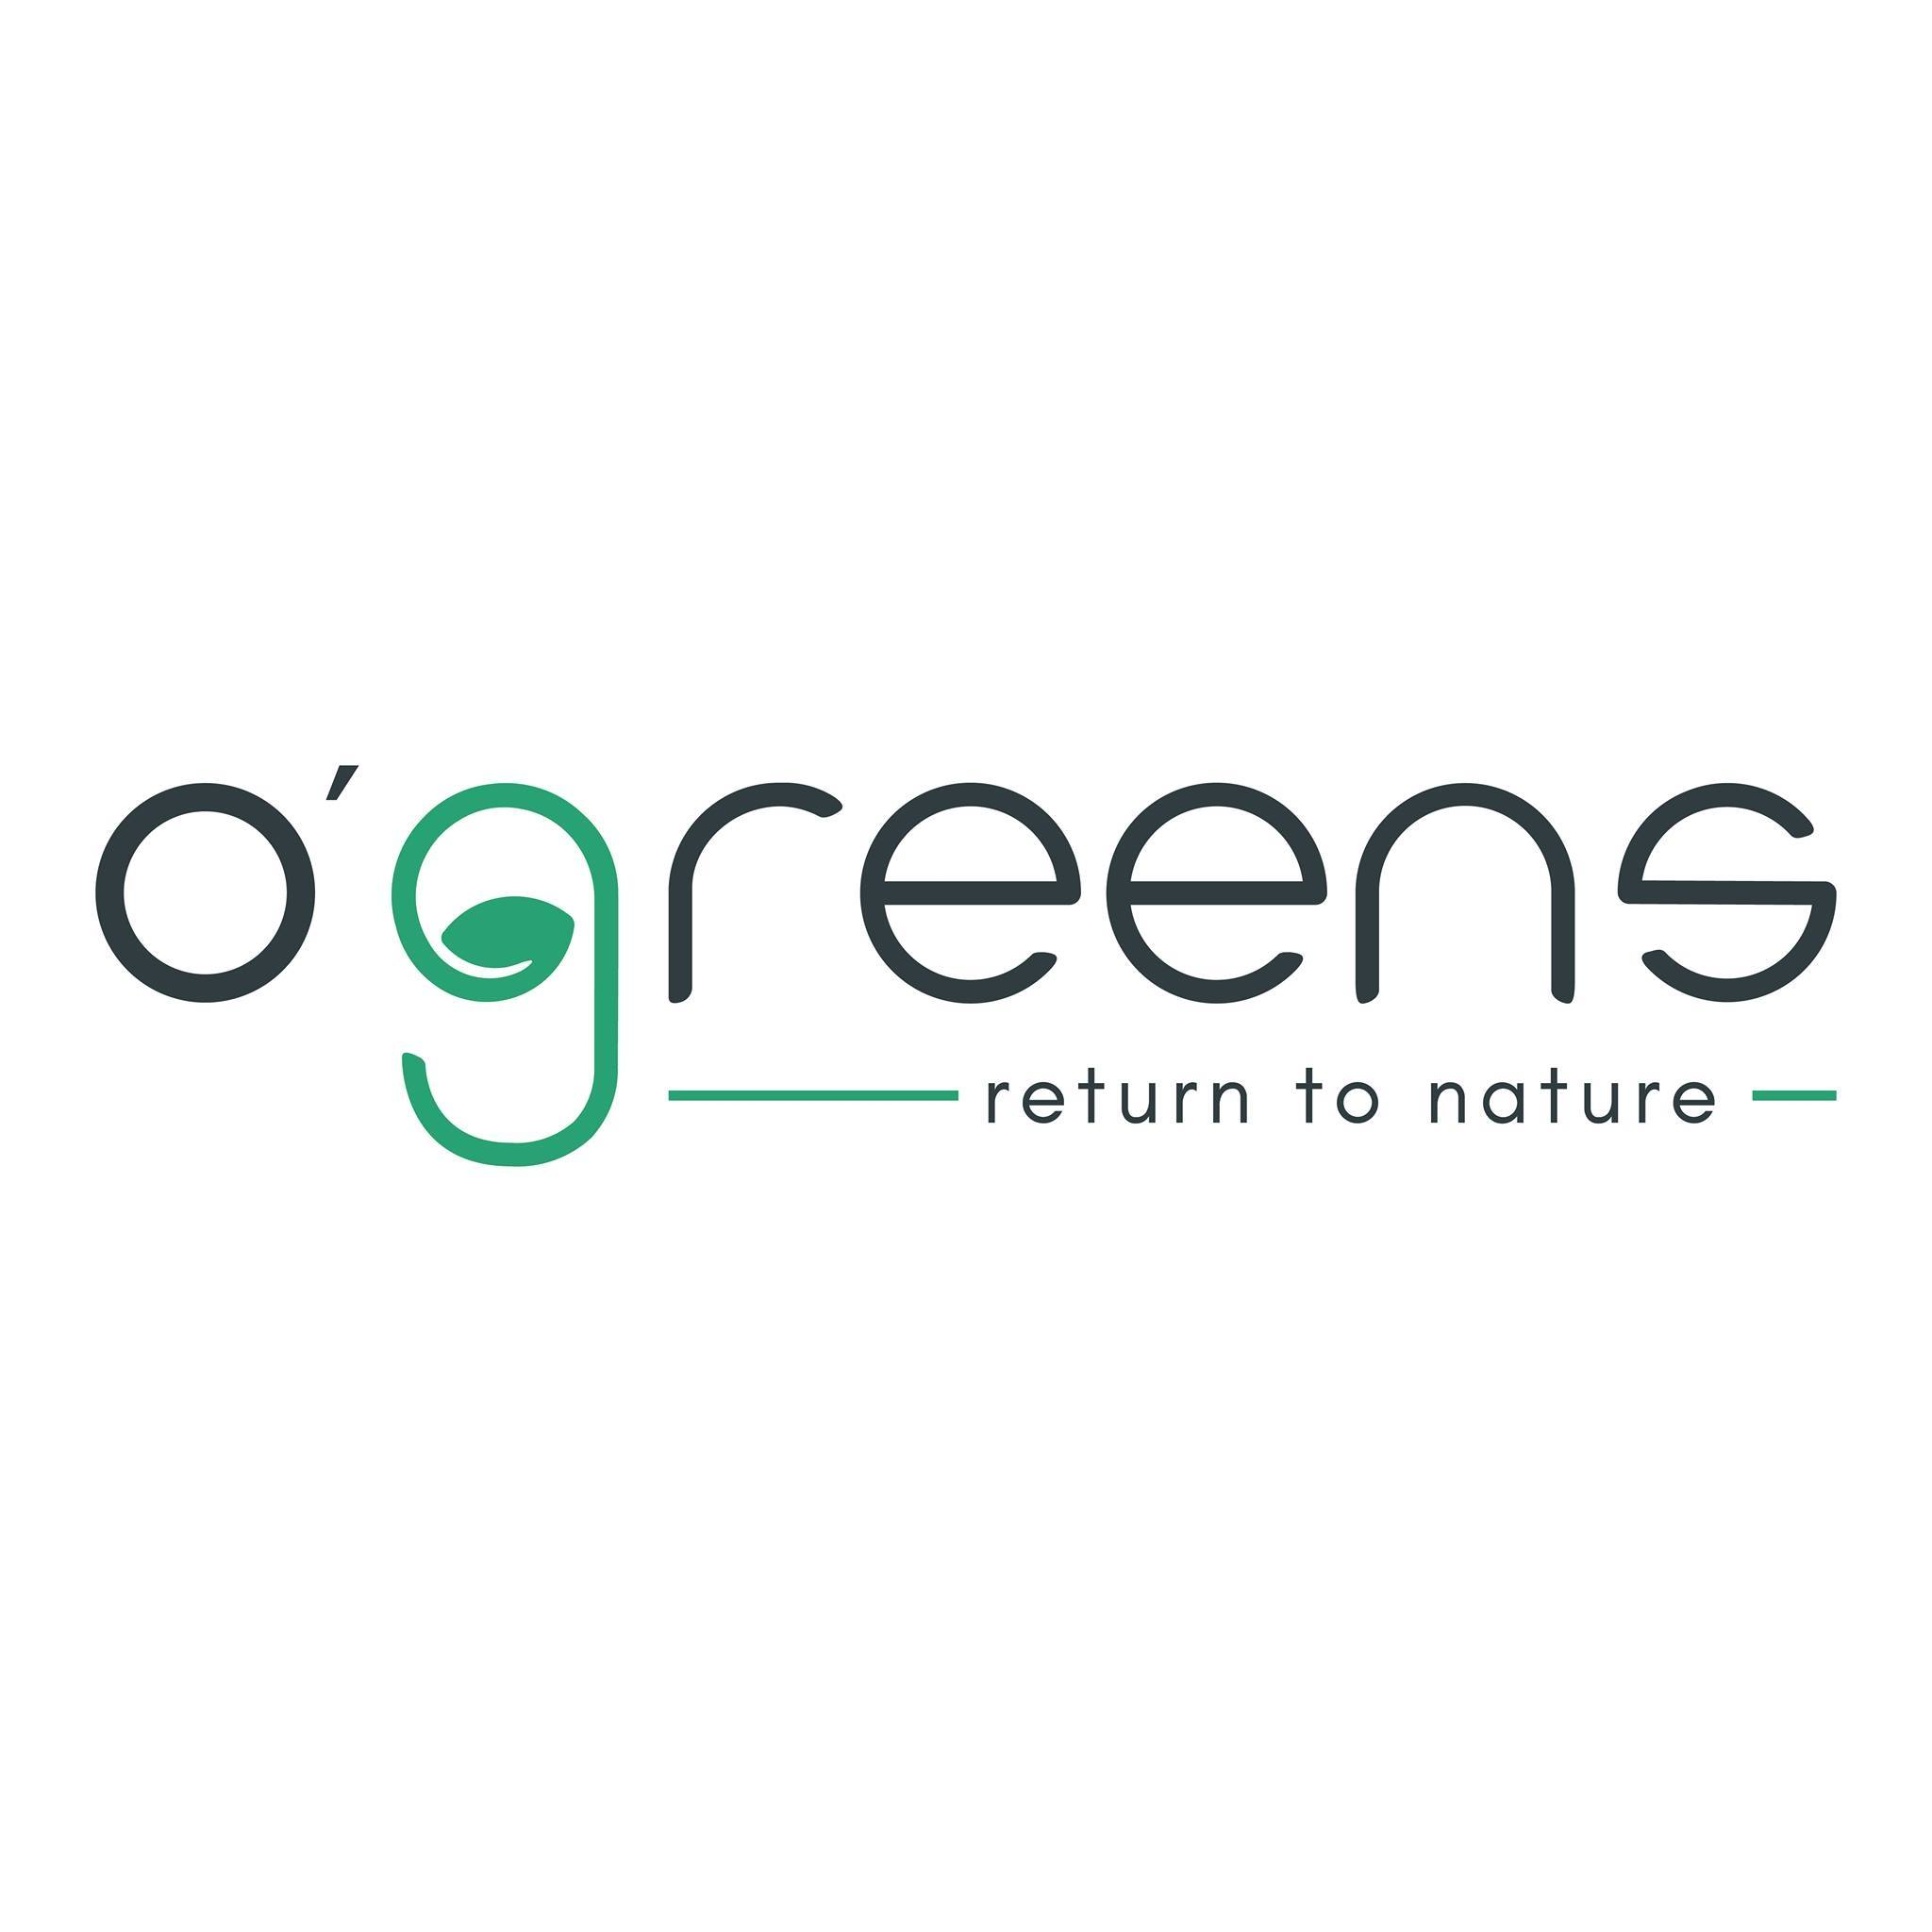 O'green offers you vegan and gluten free food